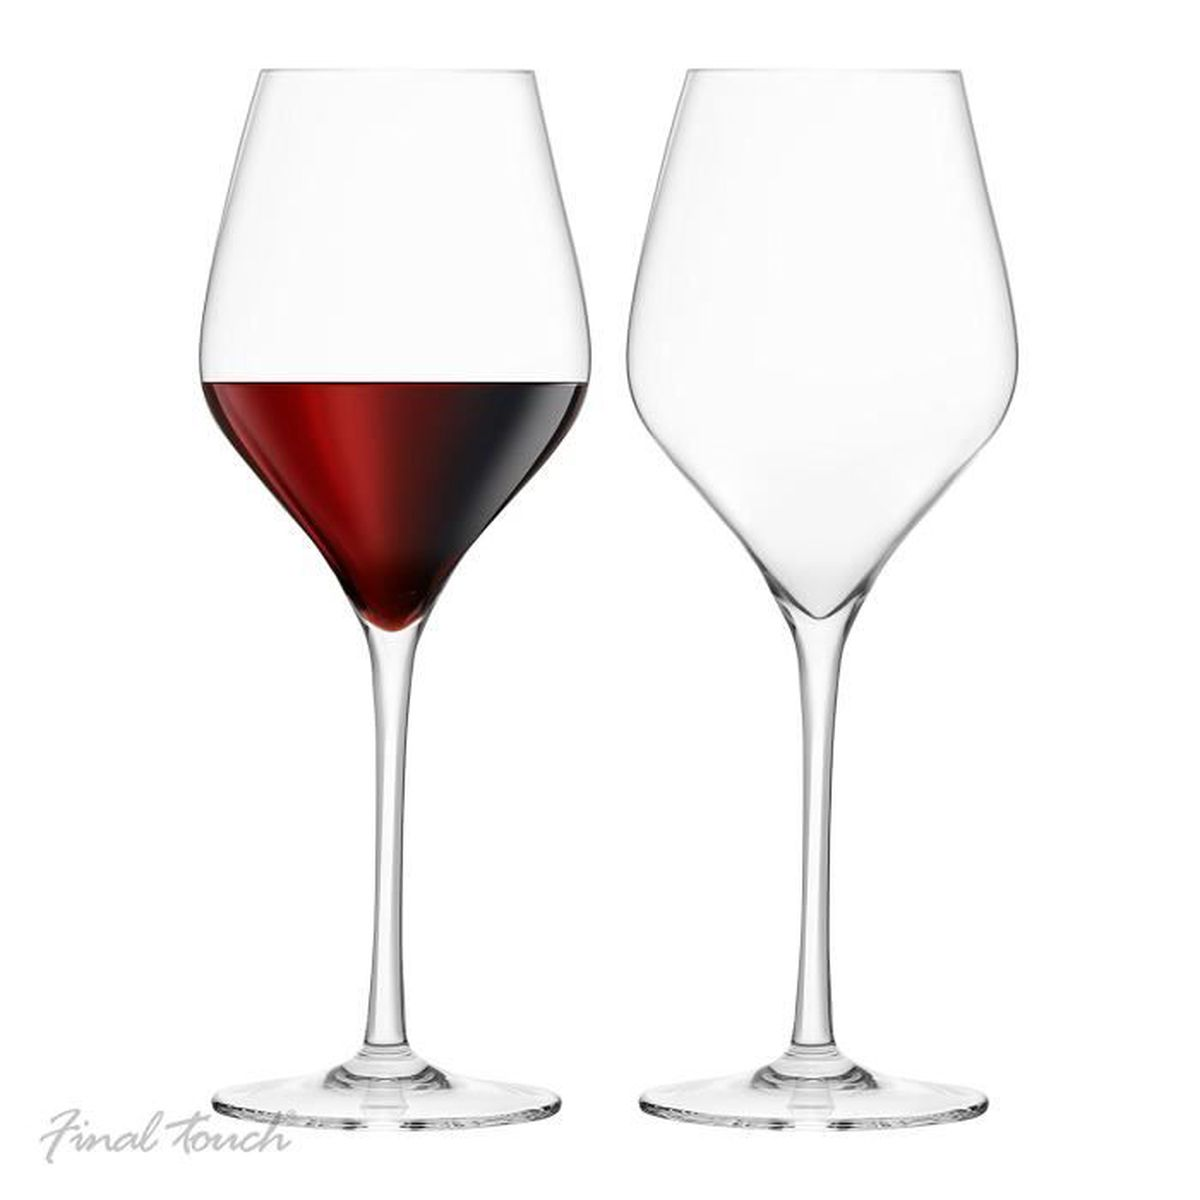 final touch verres vin rouge fabriqu avec du durashield titanium renforc pour une durabilit. Black Bedroom Furniture Sets. Home Design Ideas